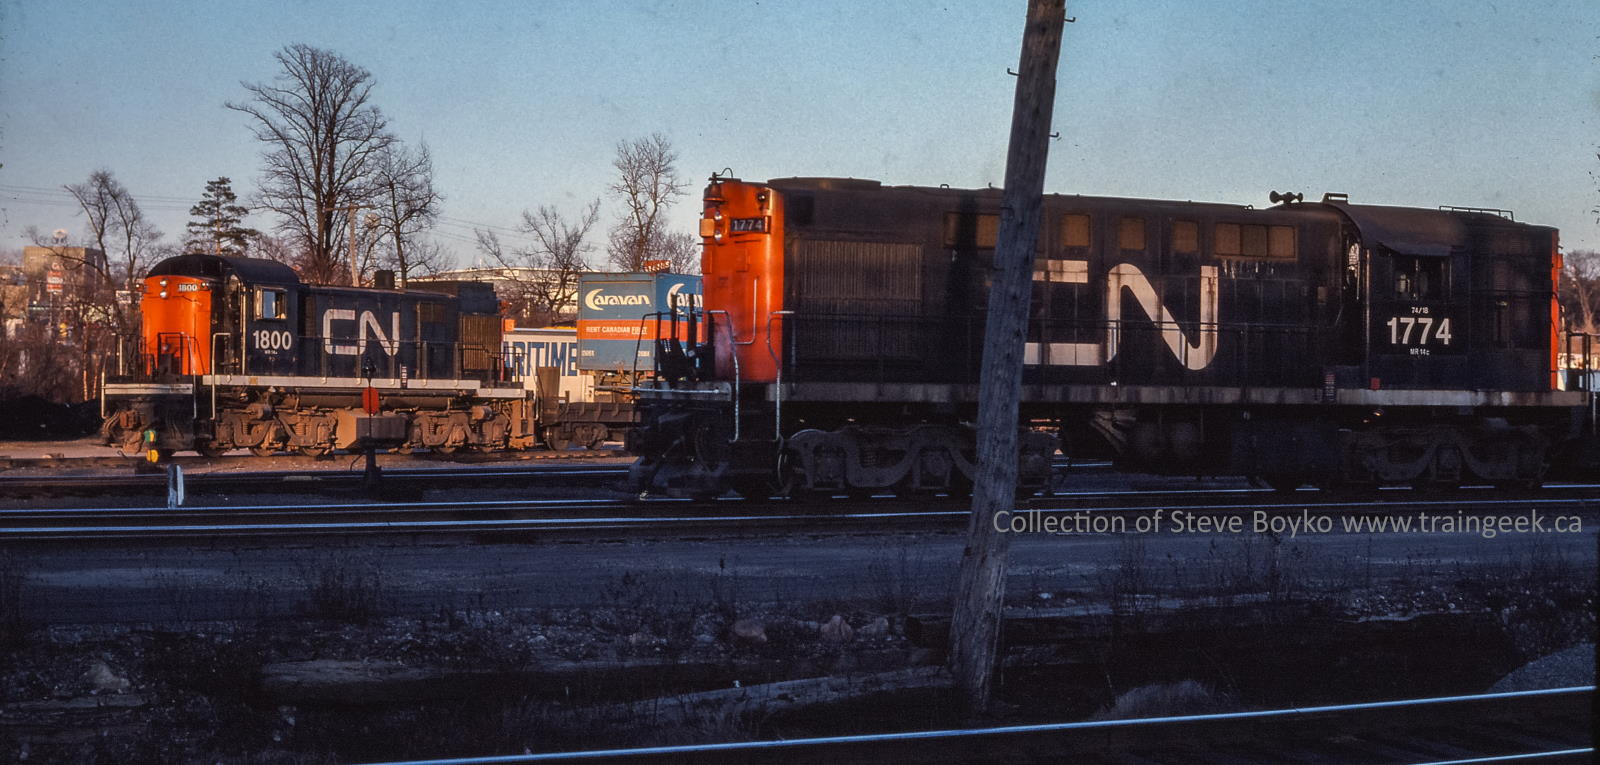 CN 1800 and 1774 in Halifax 1976/03/26, Photographer Unknown